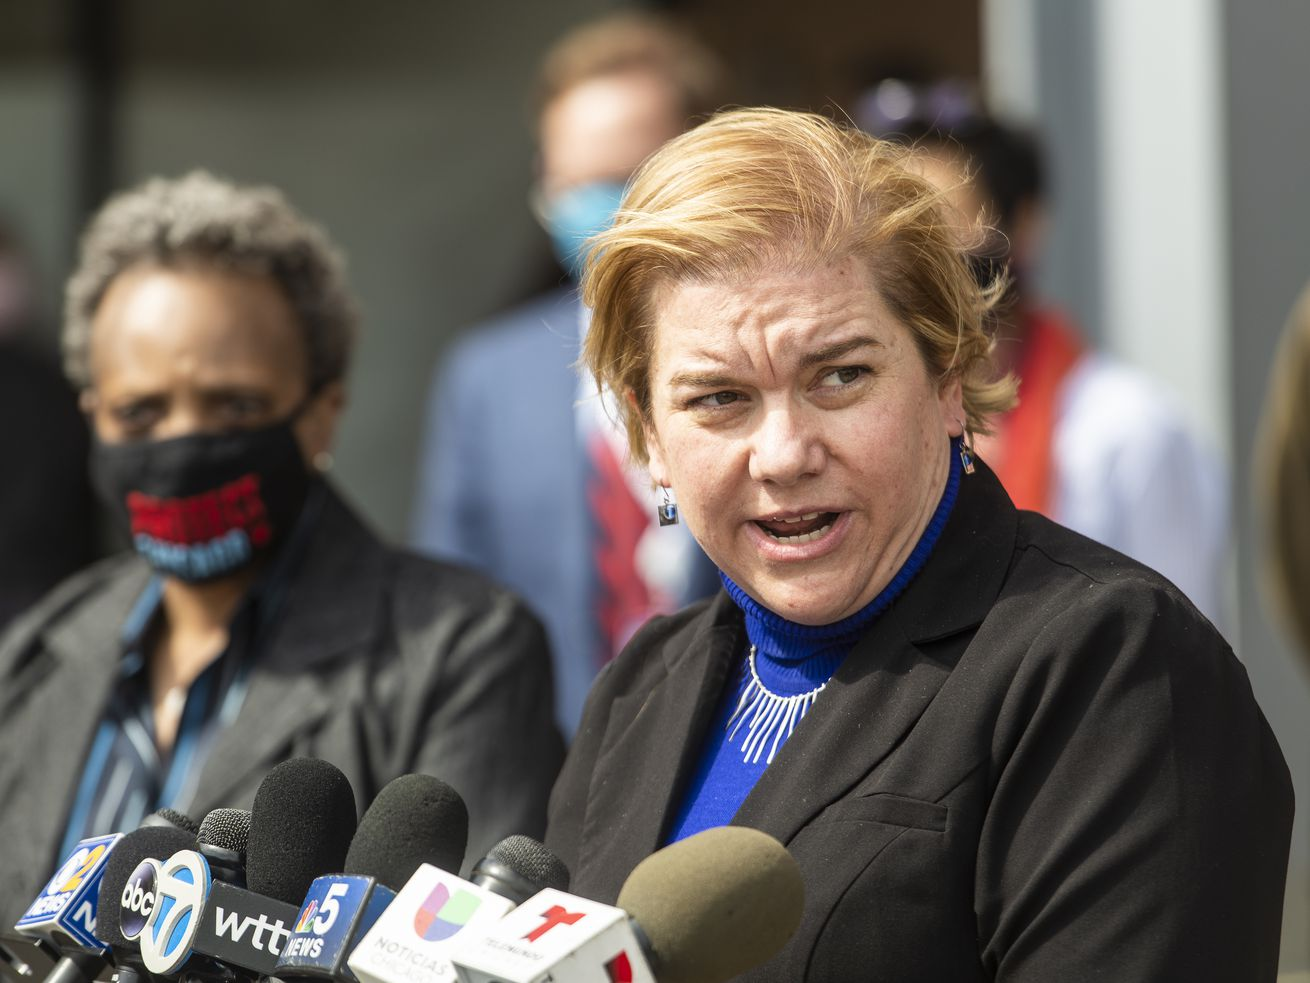 Chicago Public Health Commissioner Dr. Allison Arwady speaks at a March 22 news conference in the Back of the Yards neighborhood. After a month of increases, the city's positivity rate is moving in the right direction, Arwady said Tuesday.